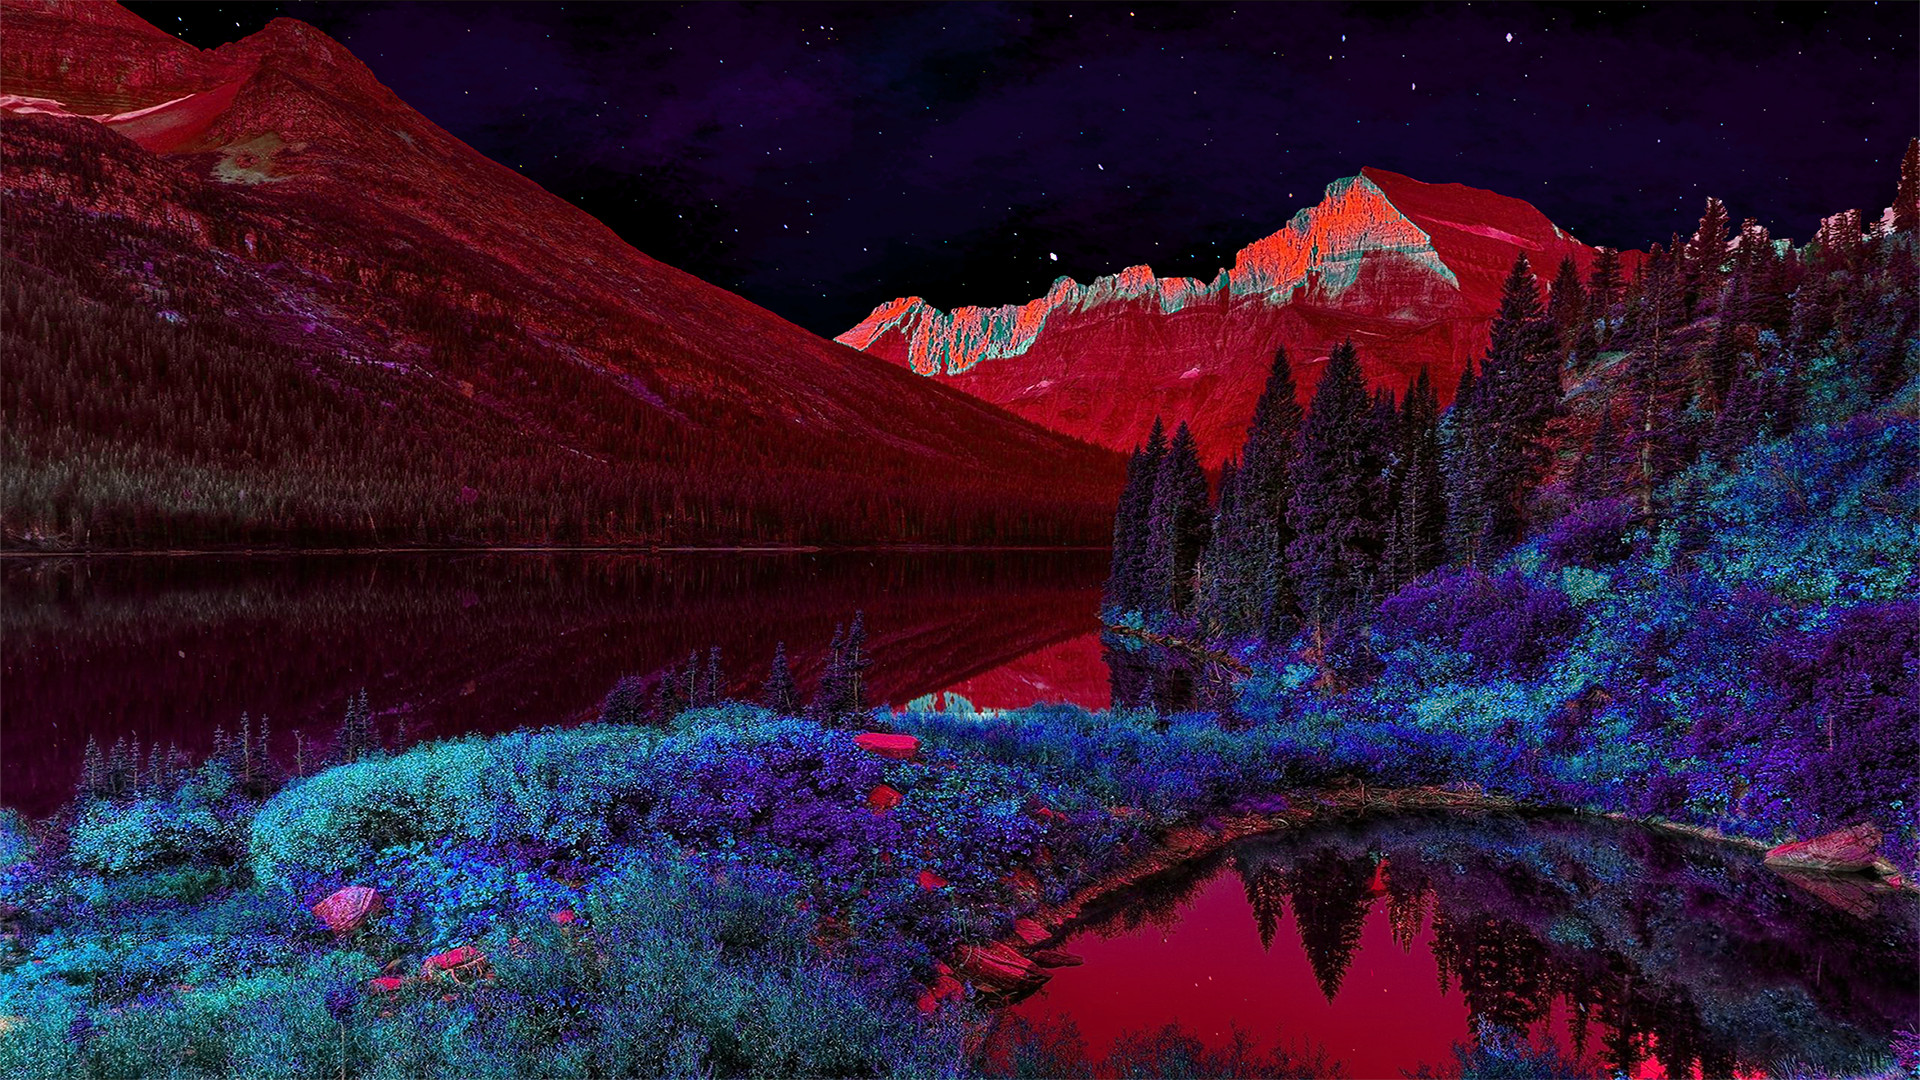 Trippy landscape wallpaper 61 pictures - Trippy nature wallpaper ...